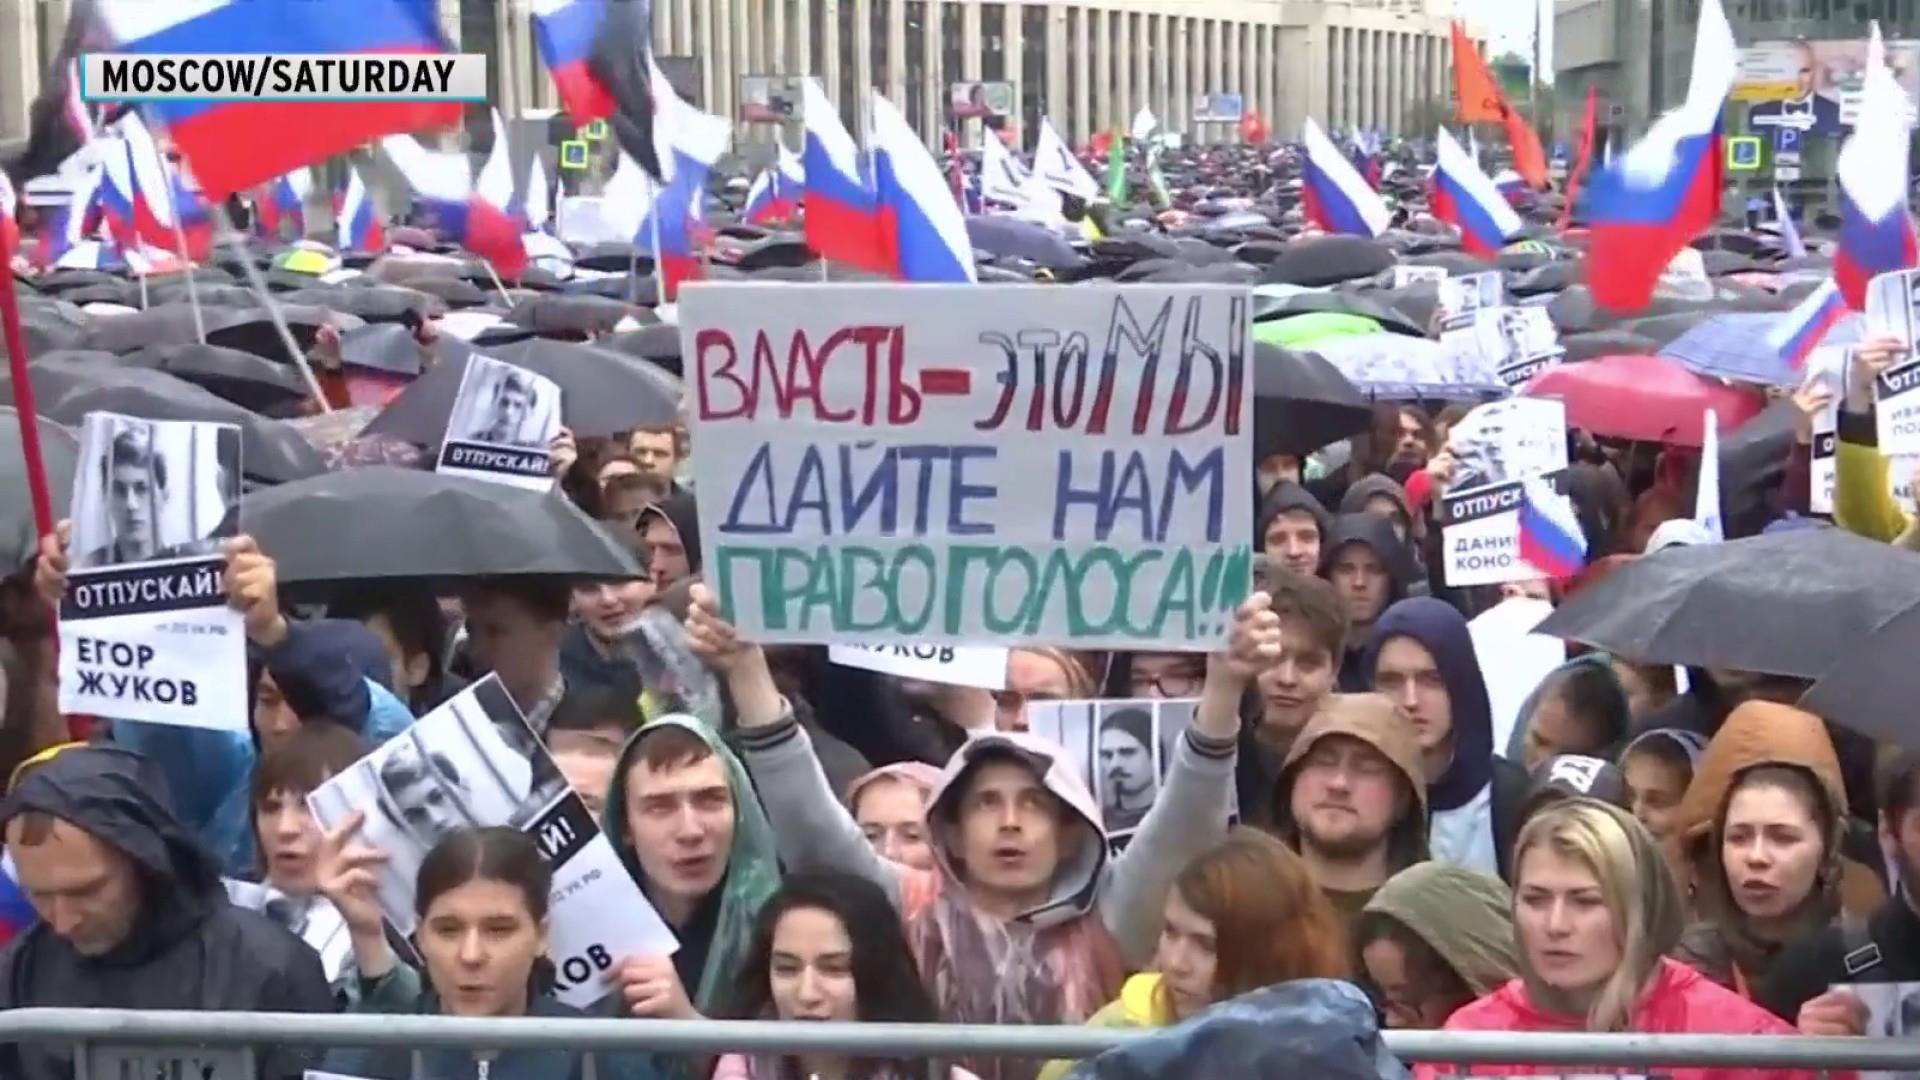 Tens of thousands take to Moscow streets for fair, free elections